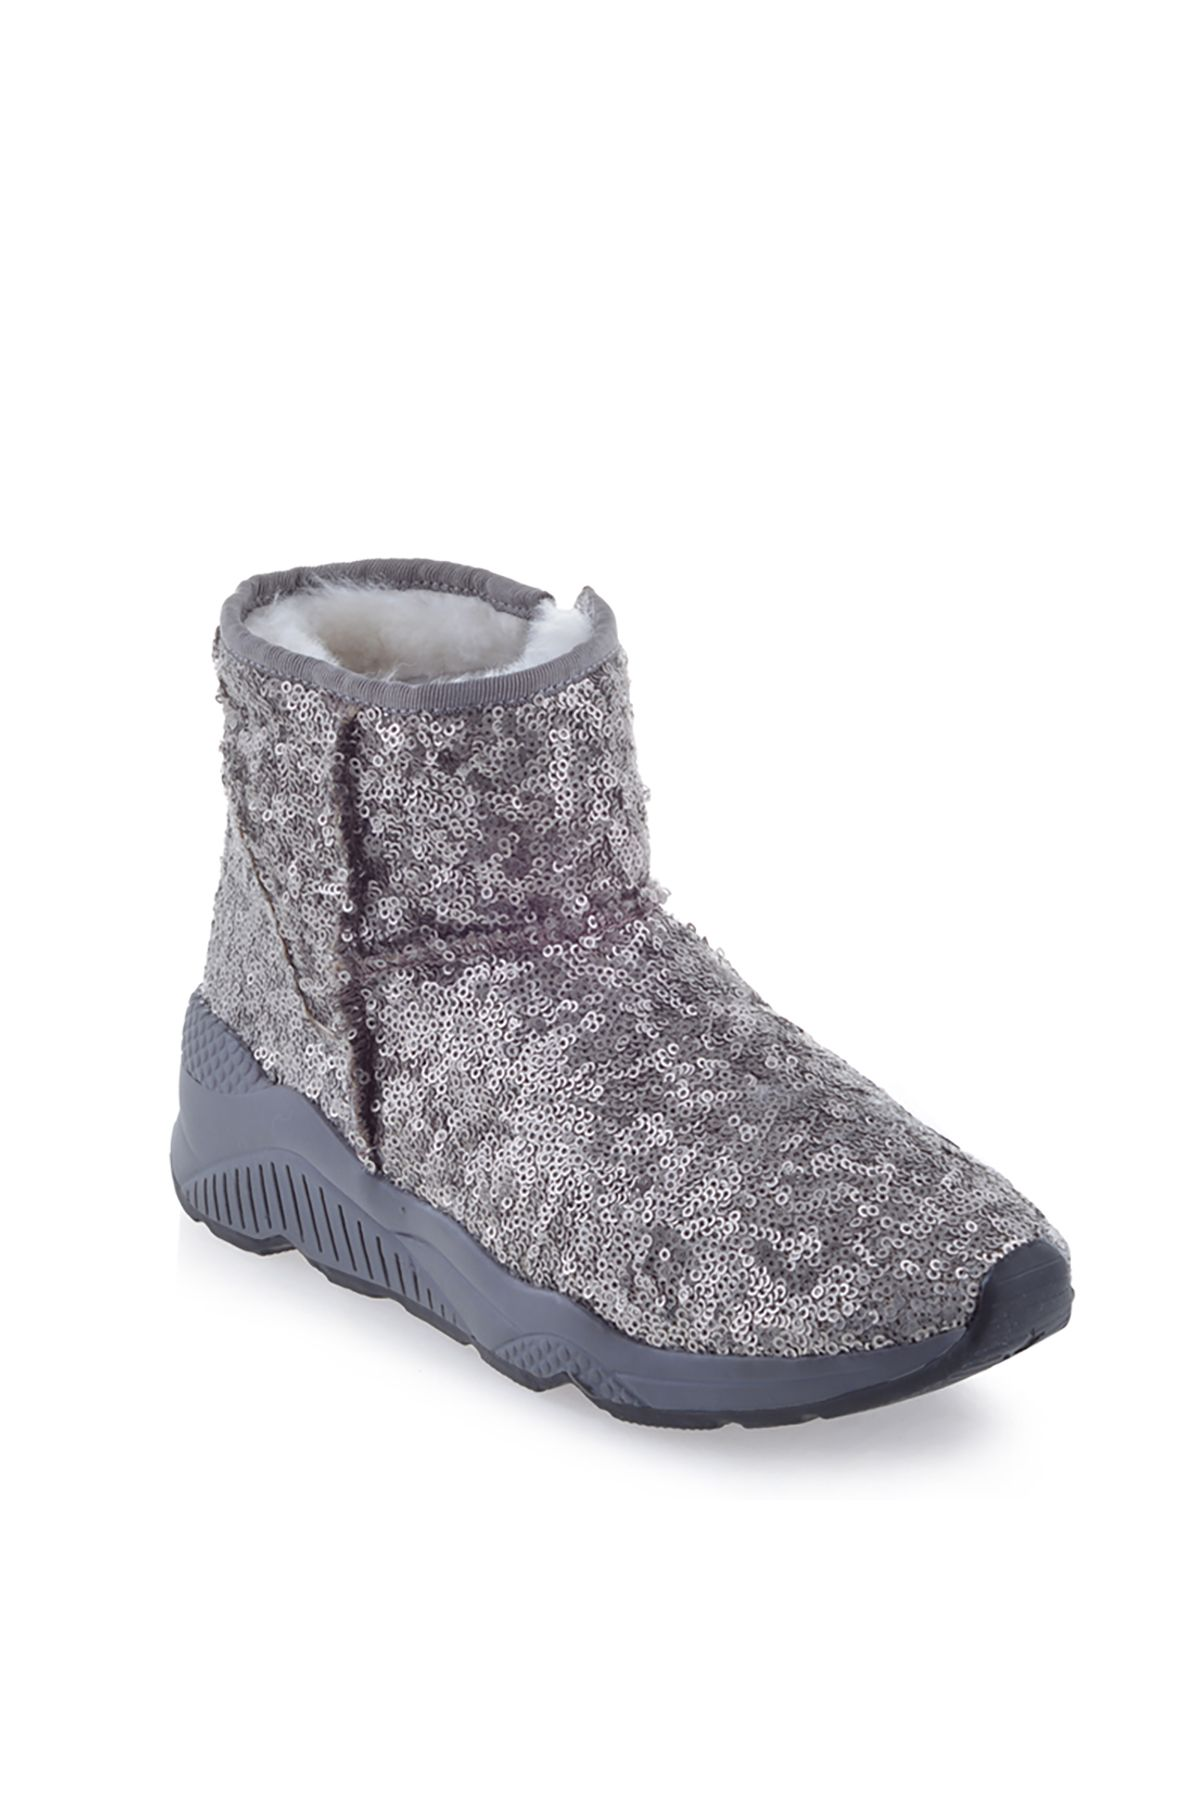 Pegia Women Boots From Genuine Suede And Fur With Side Zip 157805 Visone